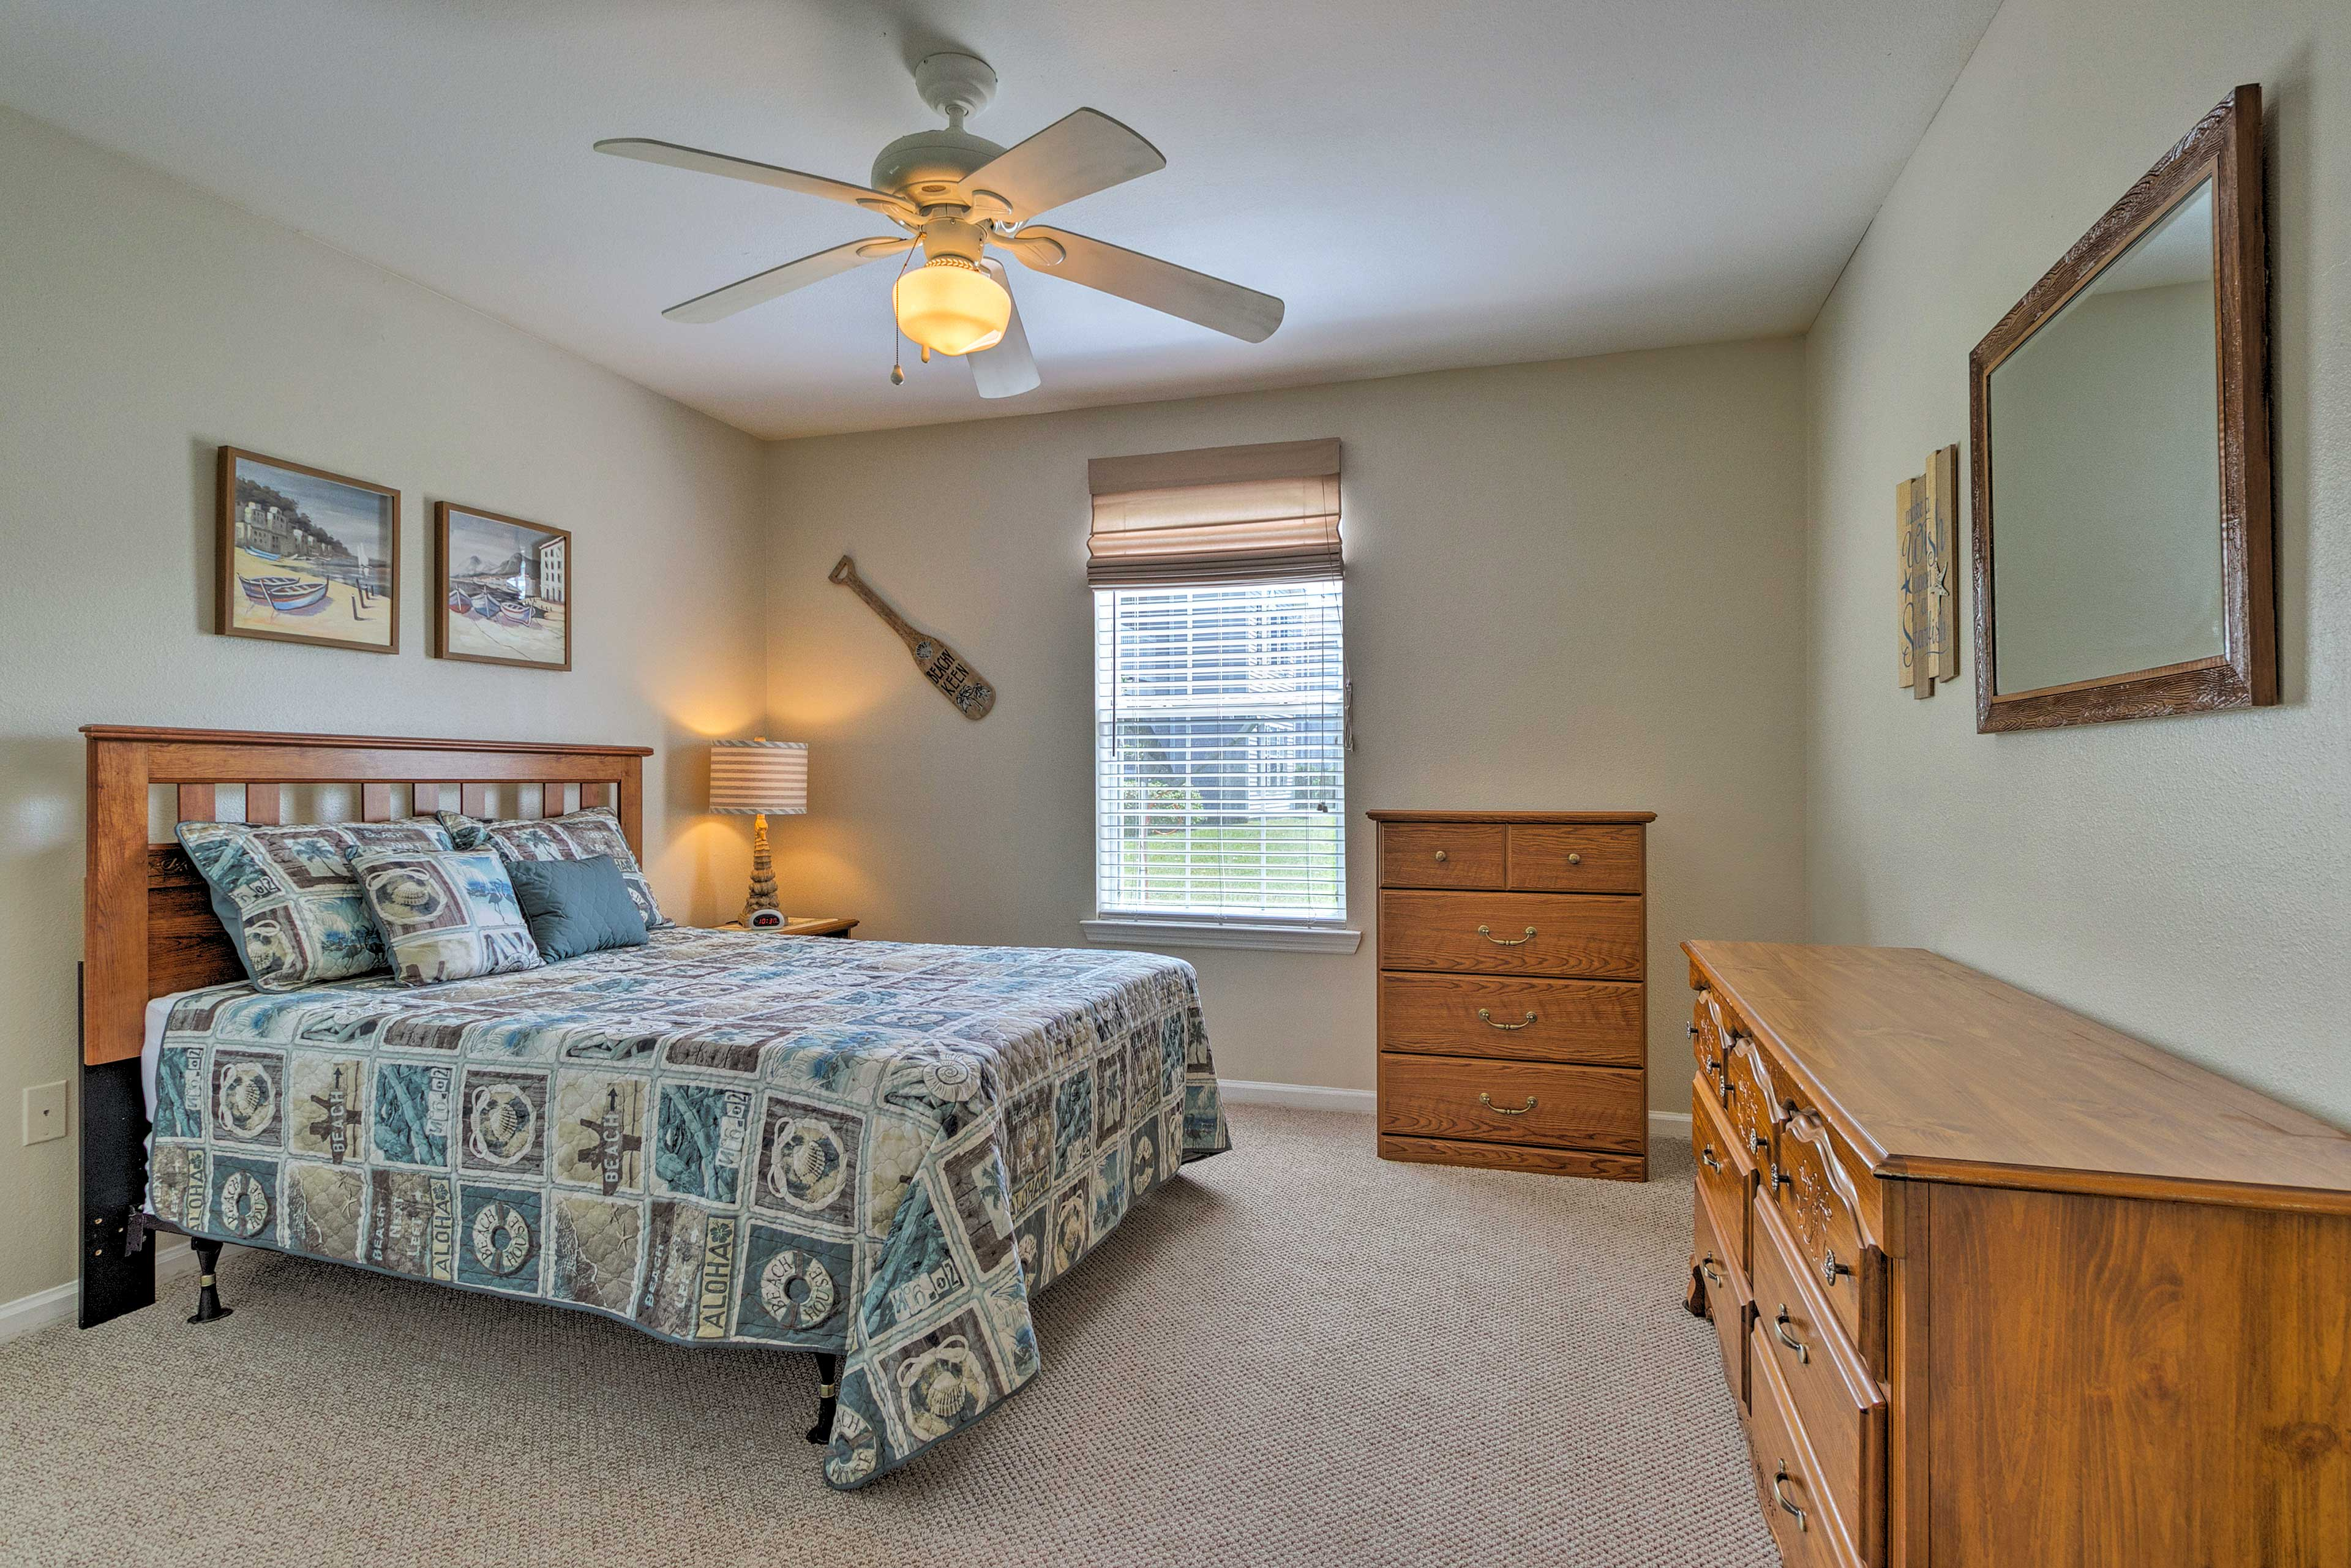 Relax on the comfortable queen bed in the second bedroom.